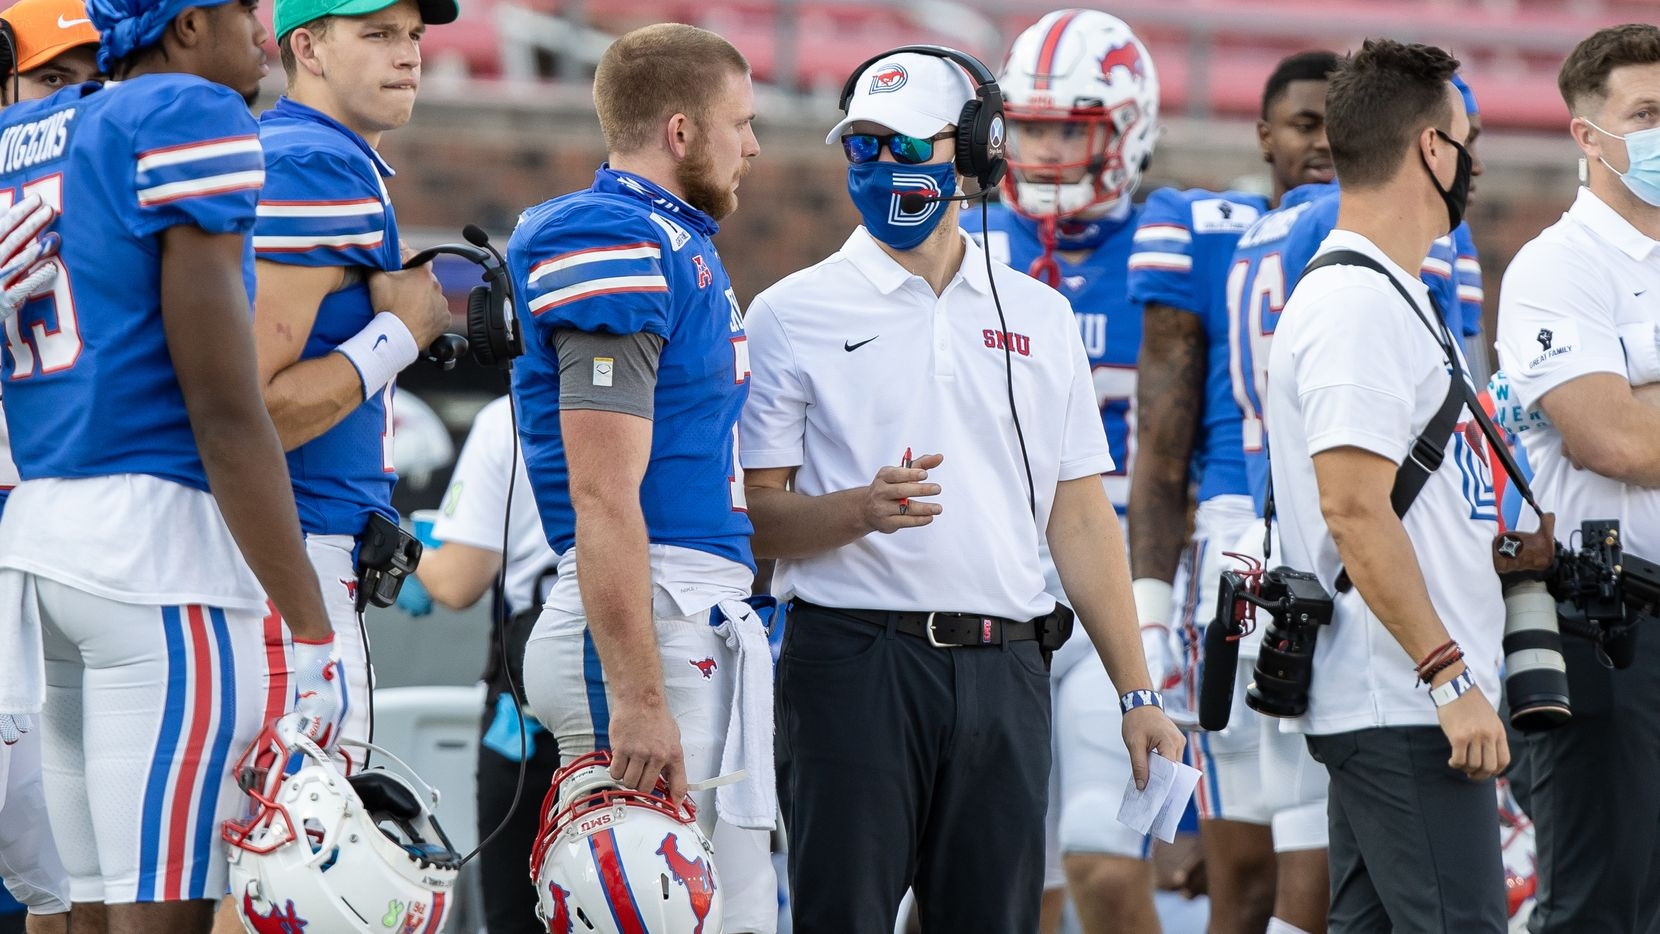 SMU offensive coordinator Garrett Riley talks to quarterback Shane Buechele (7) on the sideline during a game against Memphis on Oct. 3, 2020, at Gerald J. Ford Stadium in Dallas.